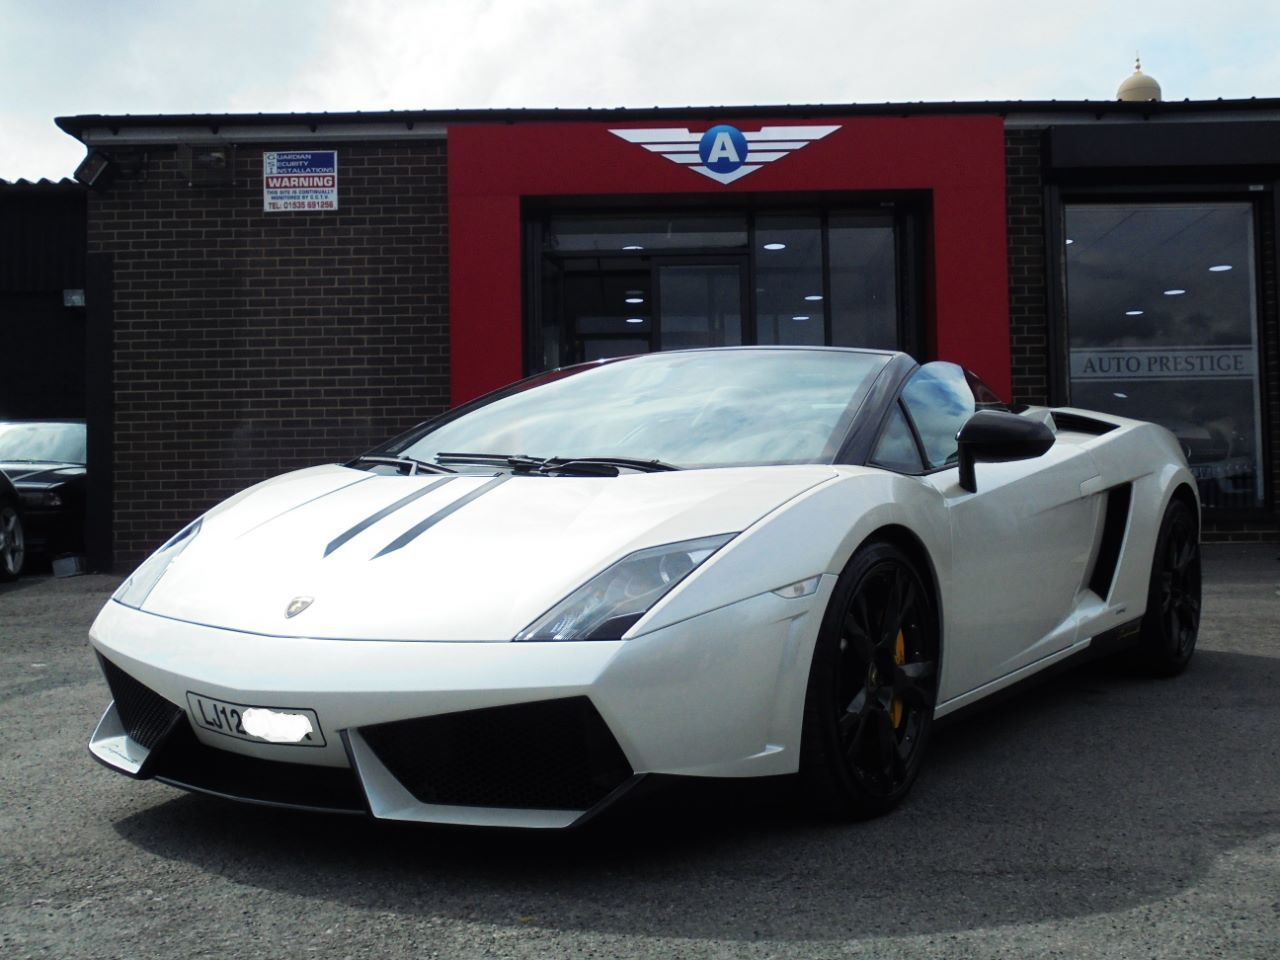 Used Lamborghini Cars Bradford, Second Hand Cars West Yorkshire ...